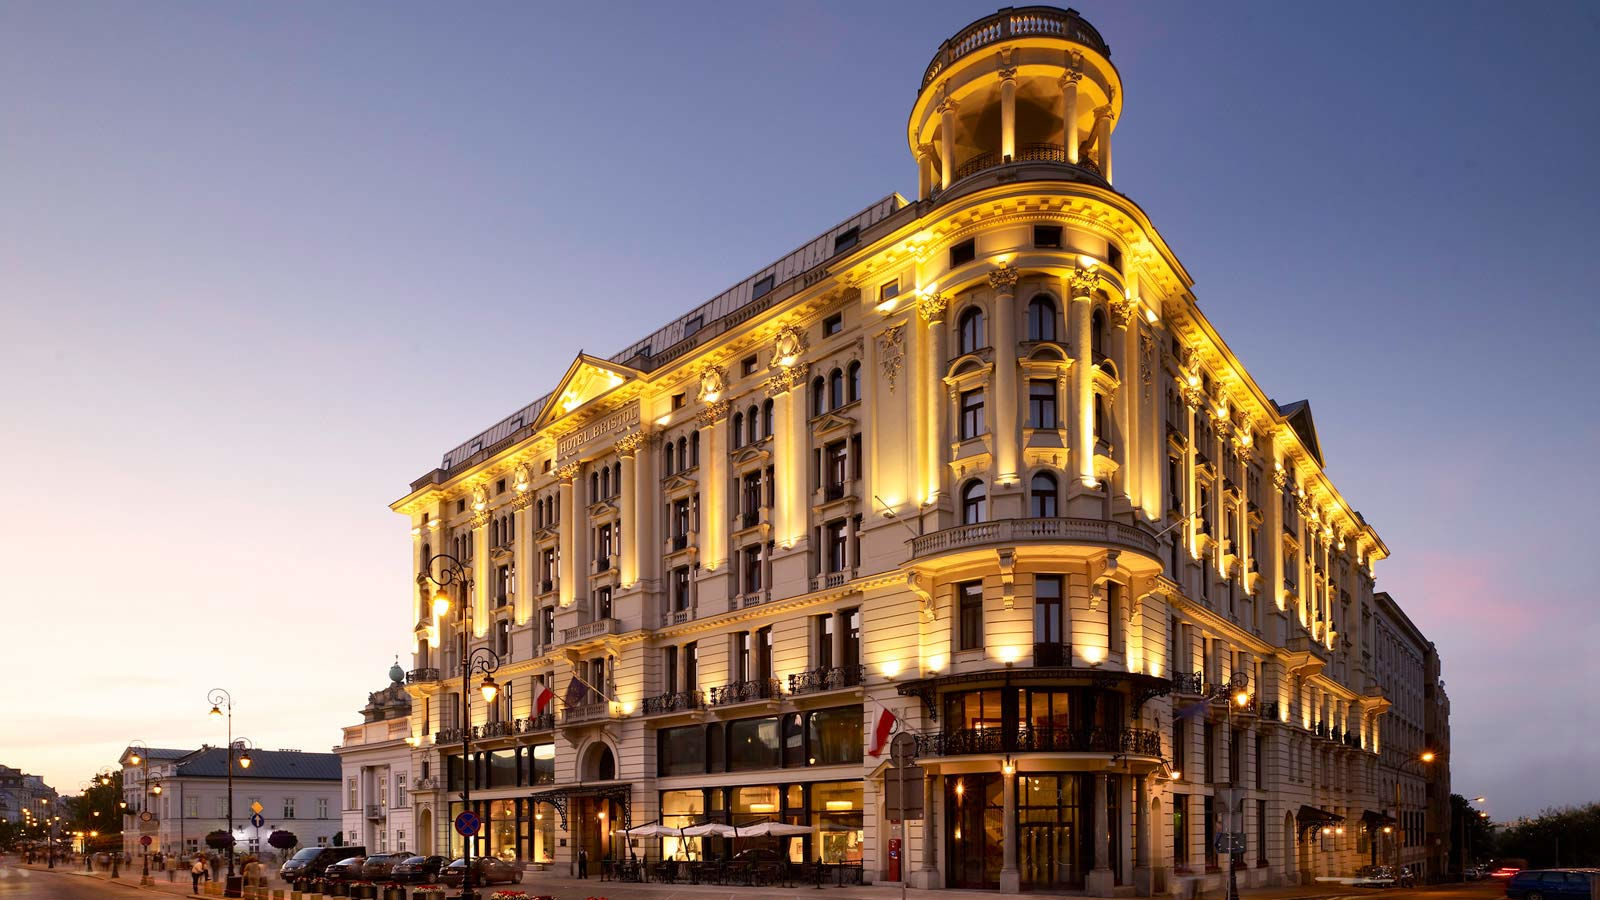 Bristol Hotel - Warsaw - Contact information and driving dircections